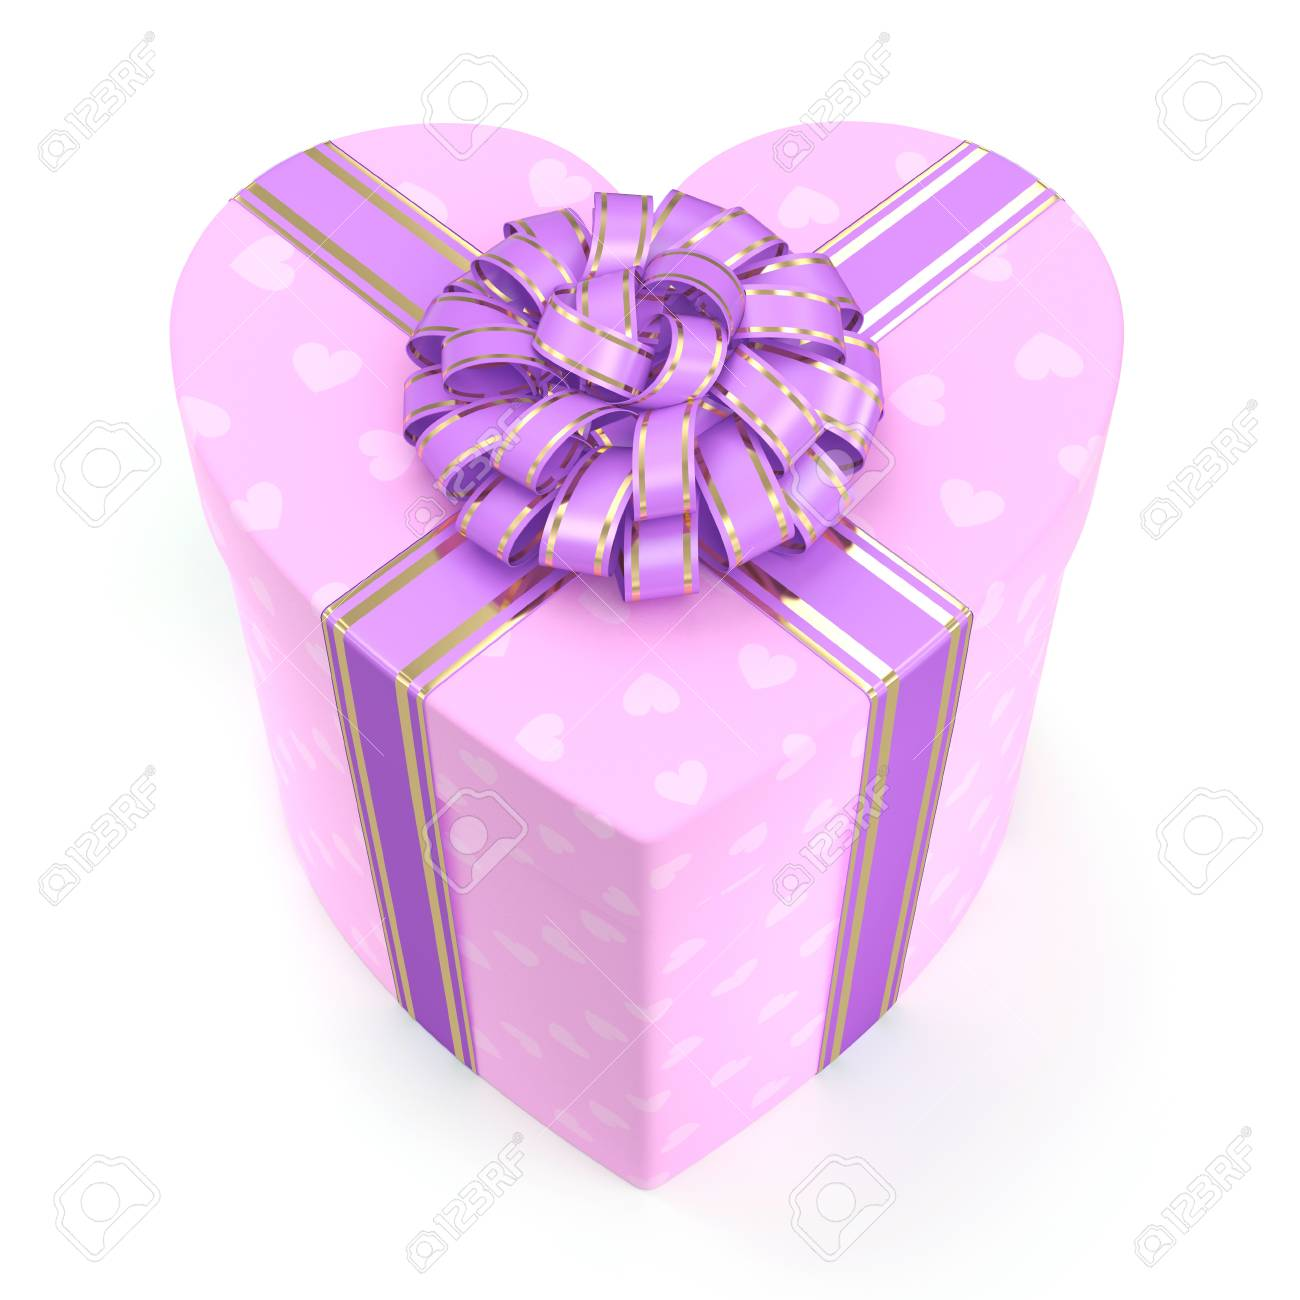 Pink Heart Shaped Box With Purple Ribbon Stock Photo, Picture And ...